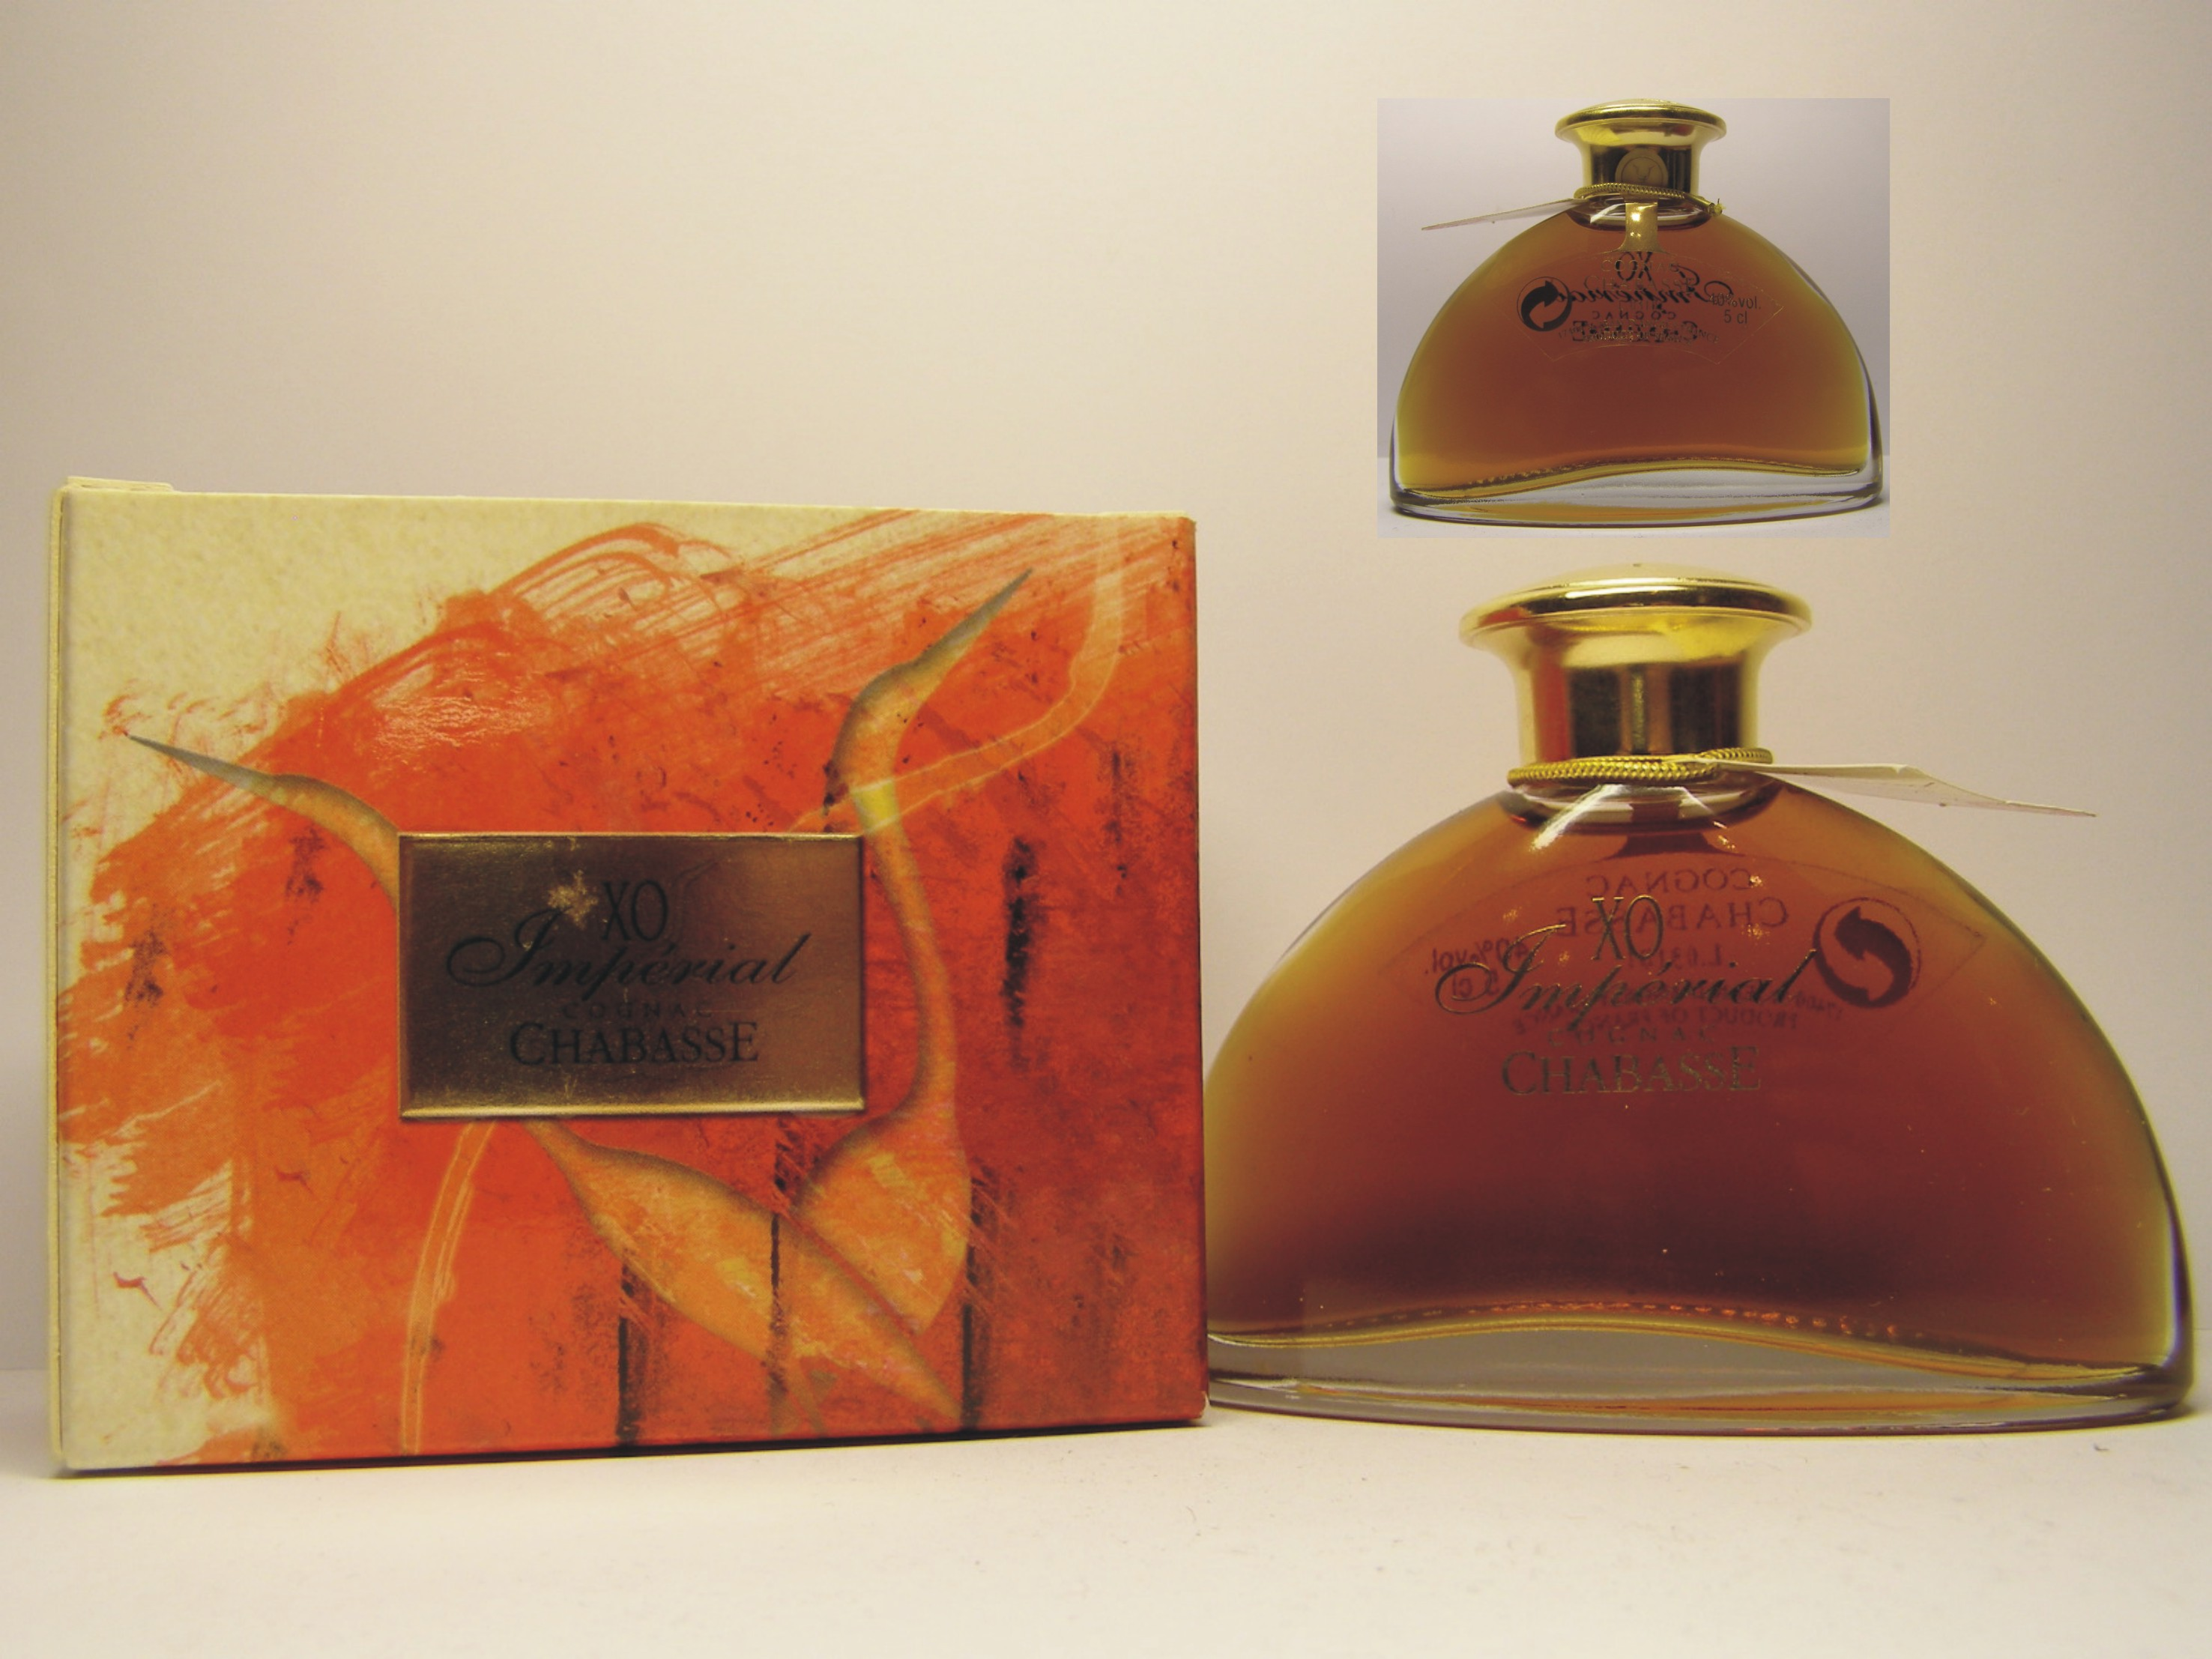 CHABASSE IMPERIAL XO Cognac